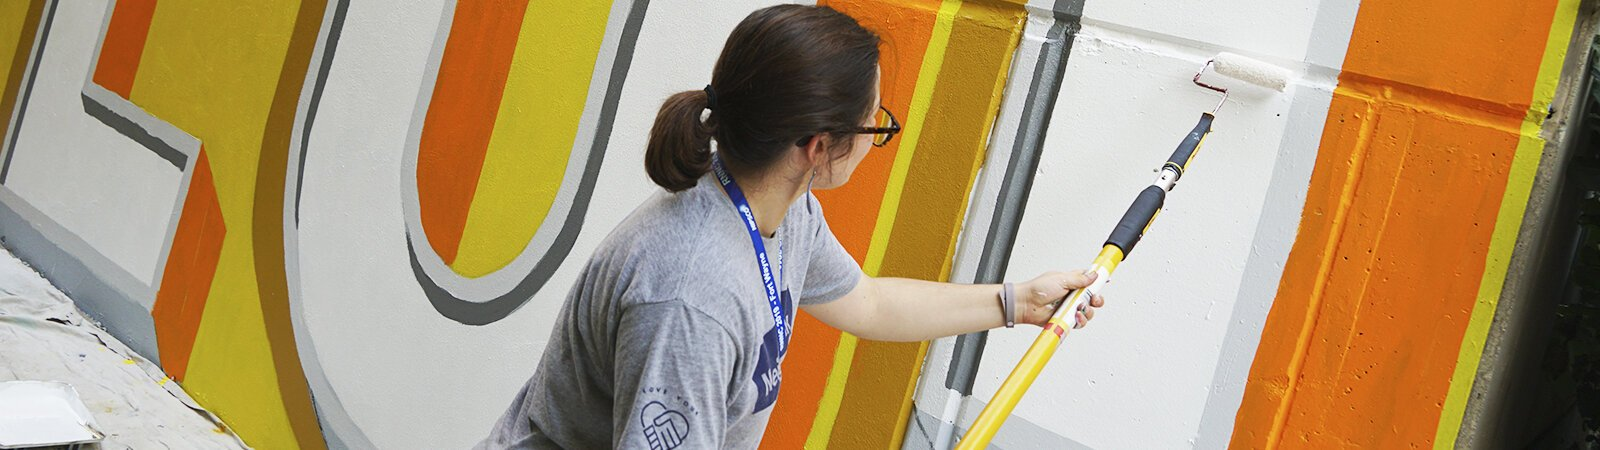 Community volunteers help artist Shawn Dunwoody paint a mural in a downtown Fort Wayne alleyway.